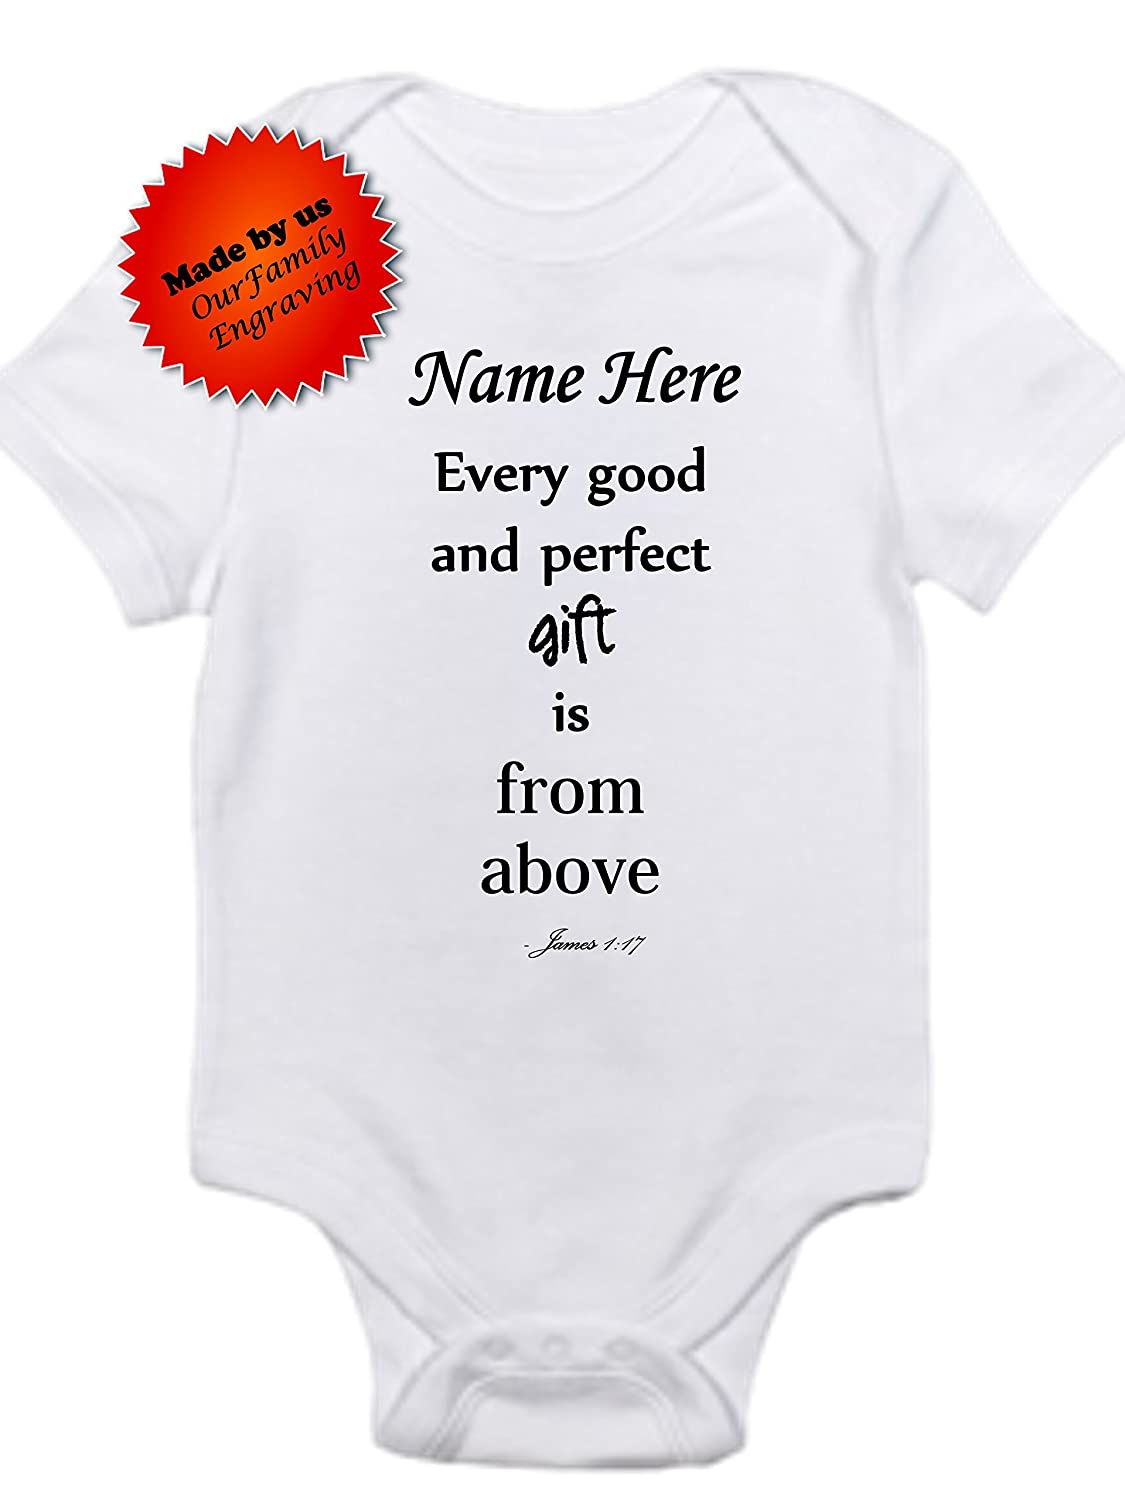 Custom name Every good and perfect gift is from above onesie gerber bodysuit cute baby